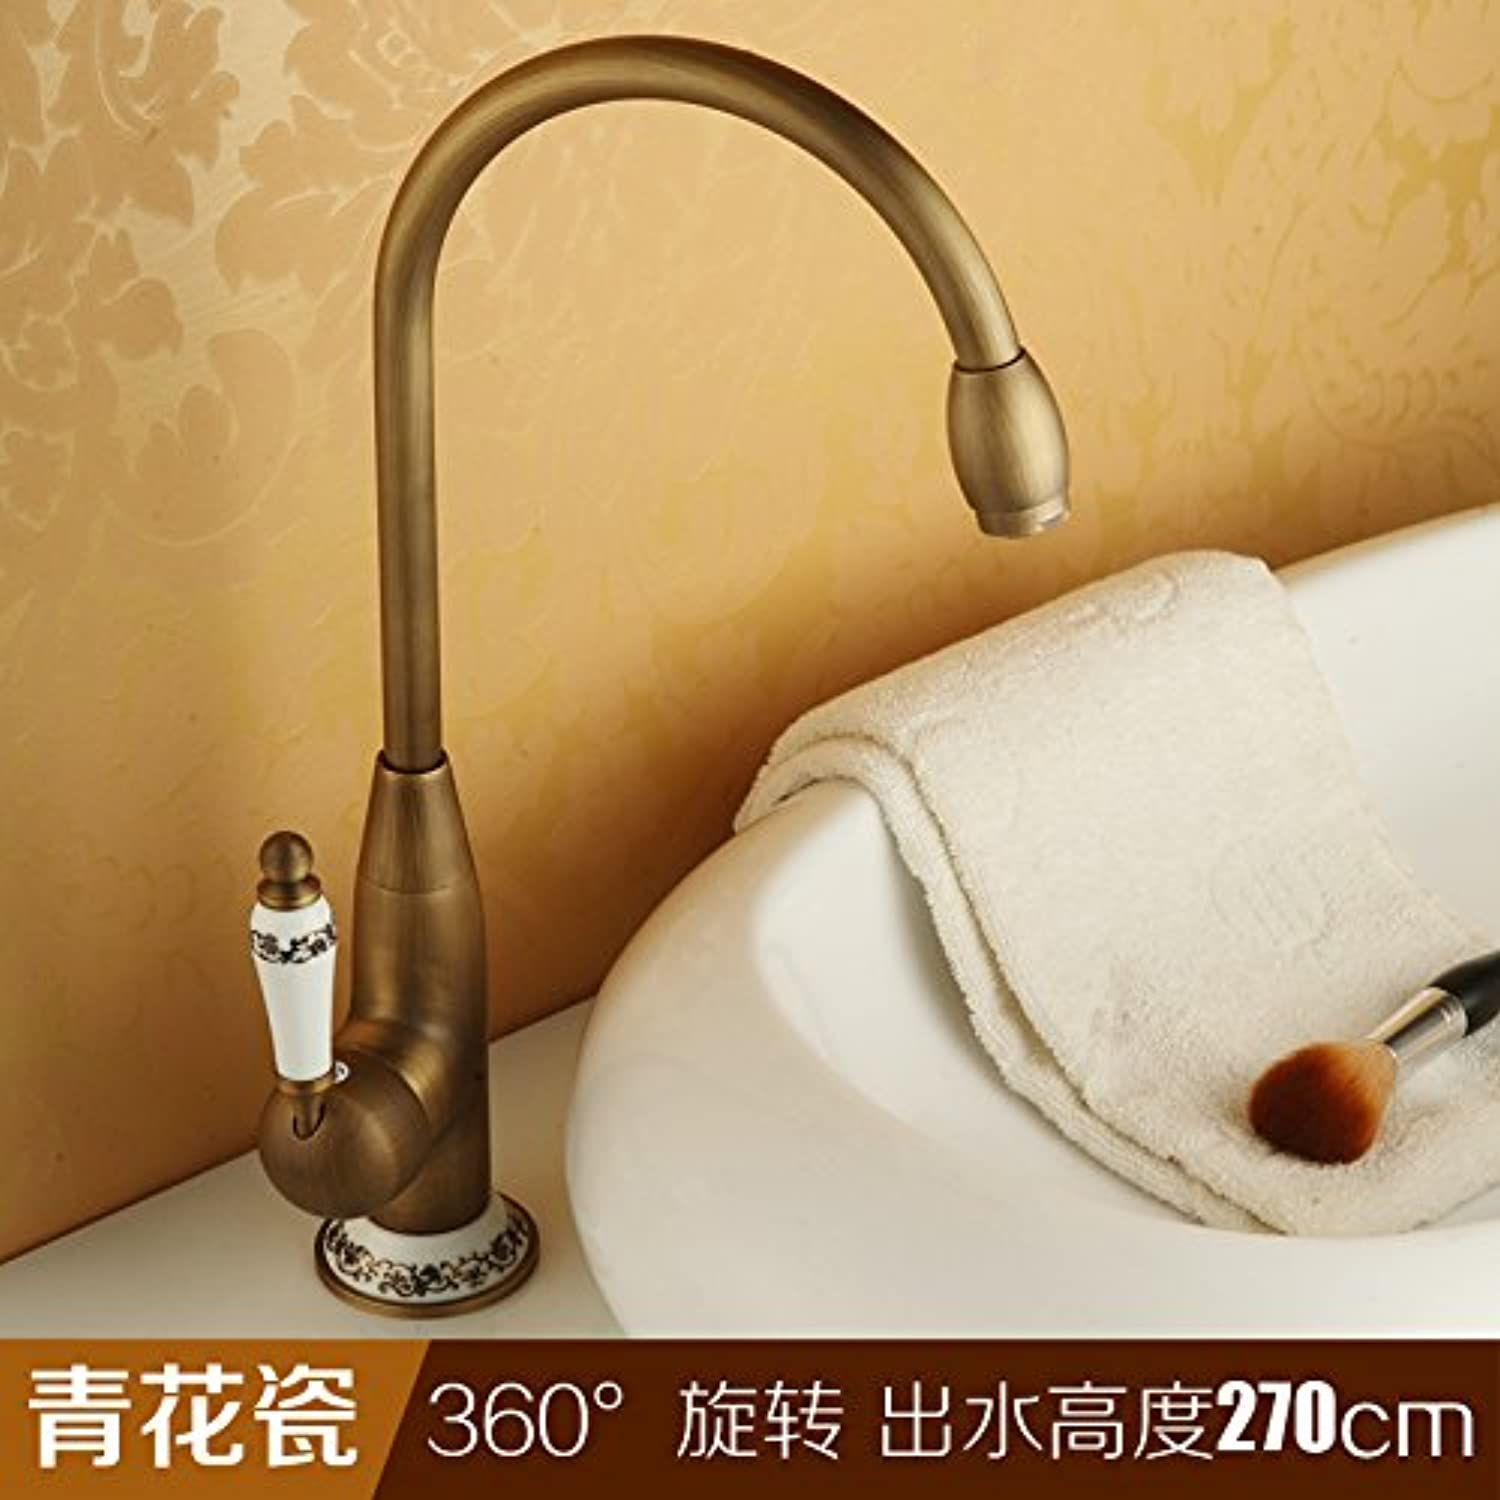 LHbox Basin Mixer Tap Bathroom Sink Faucet Antique-brass kitchen faucet hot and cold with high swivel basin sinks common cold water faucet, bluee-tiled)